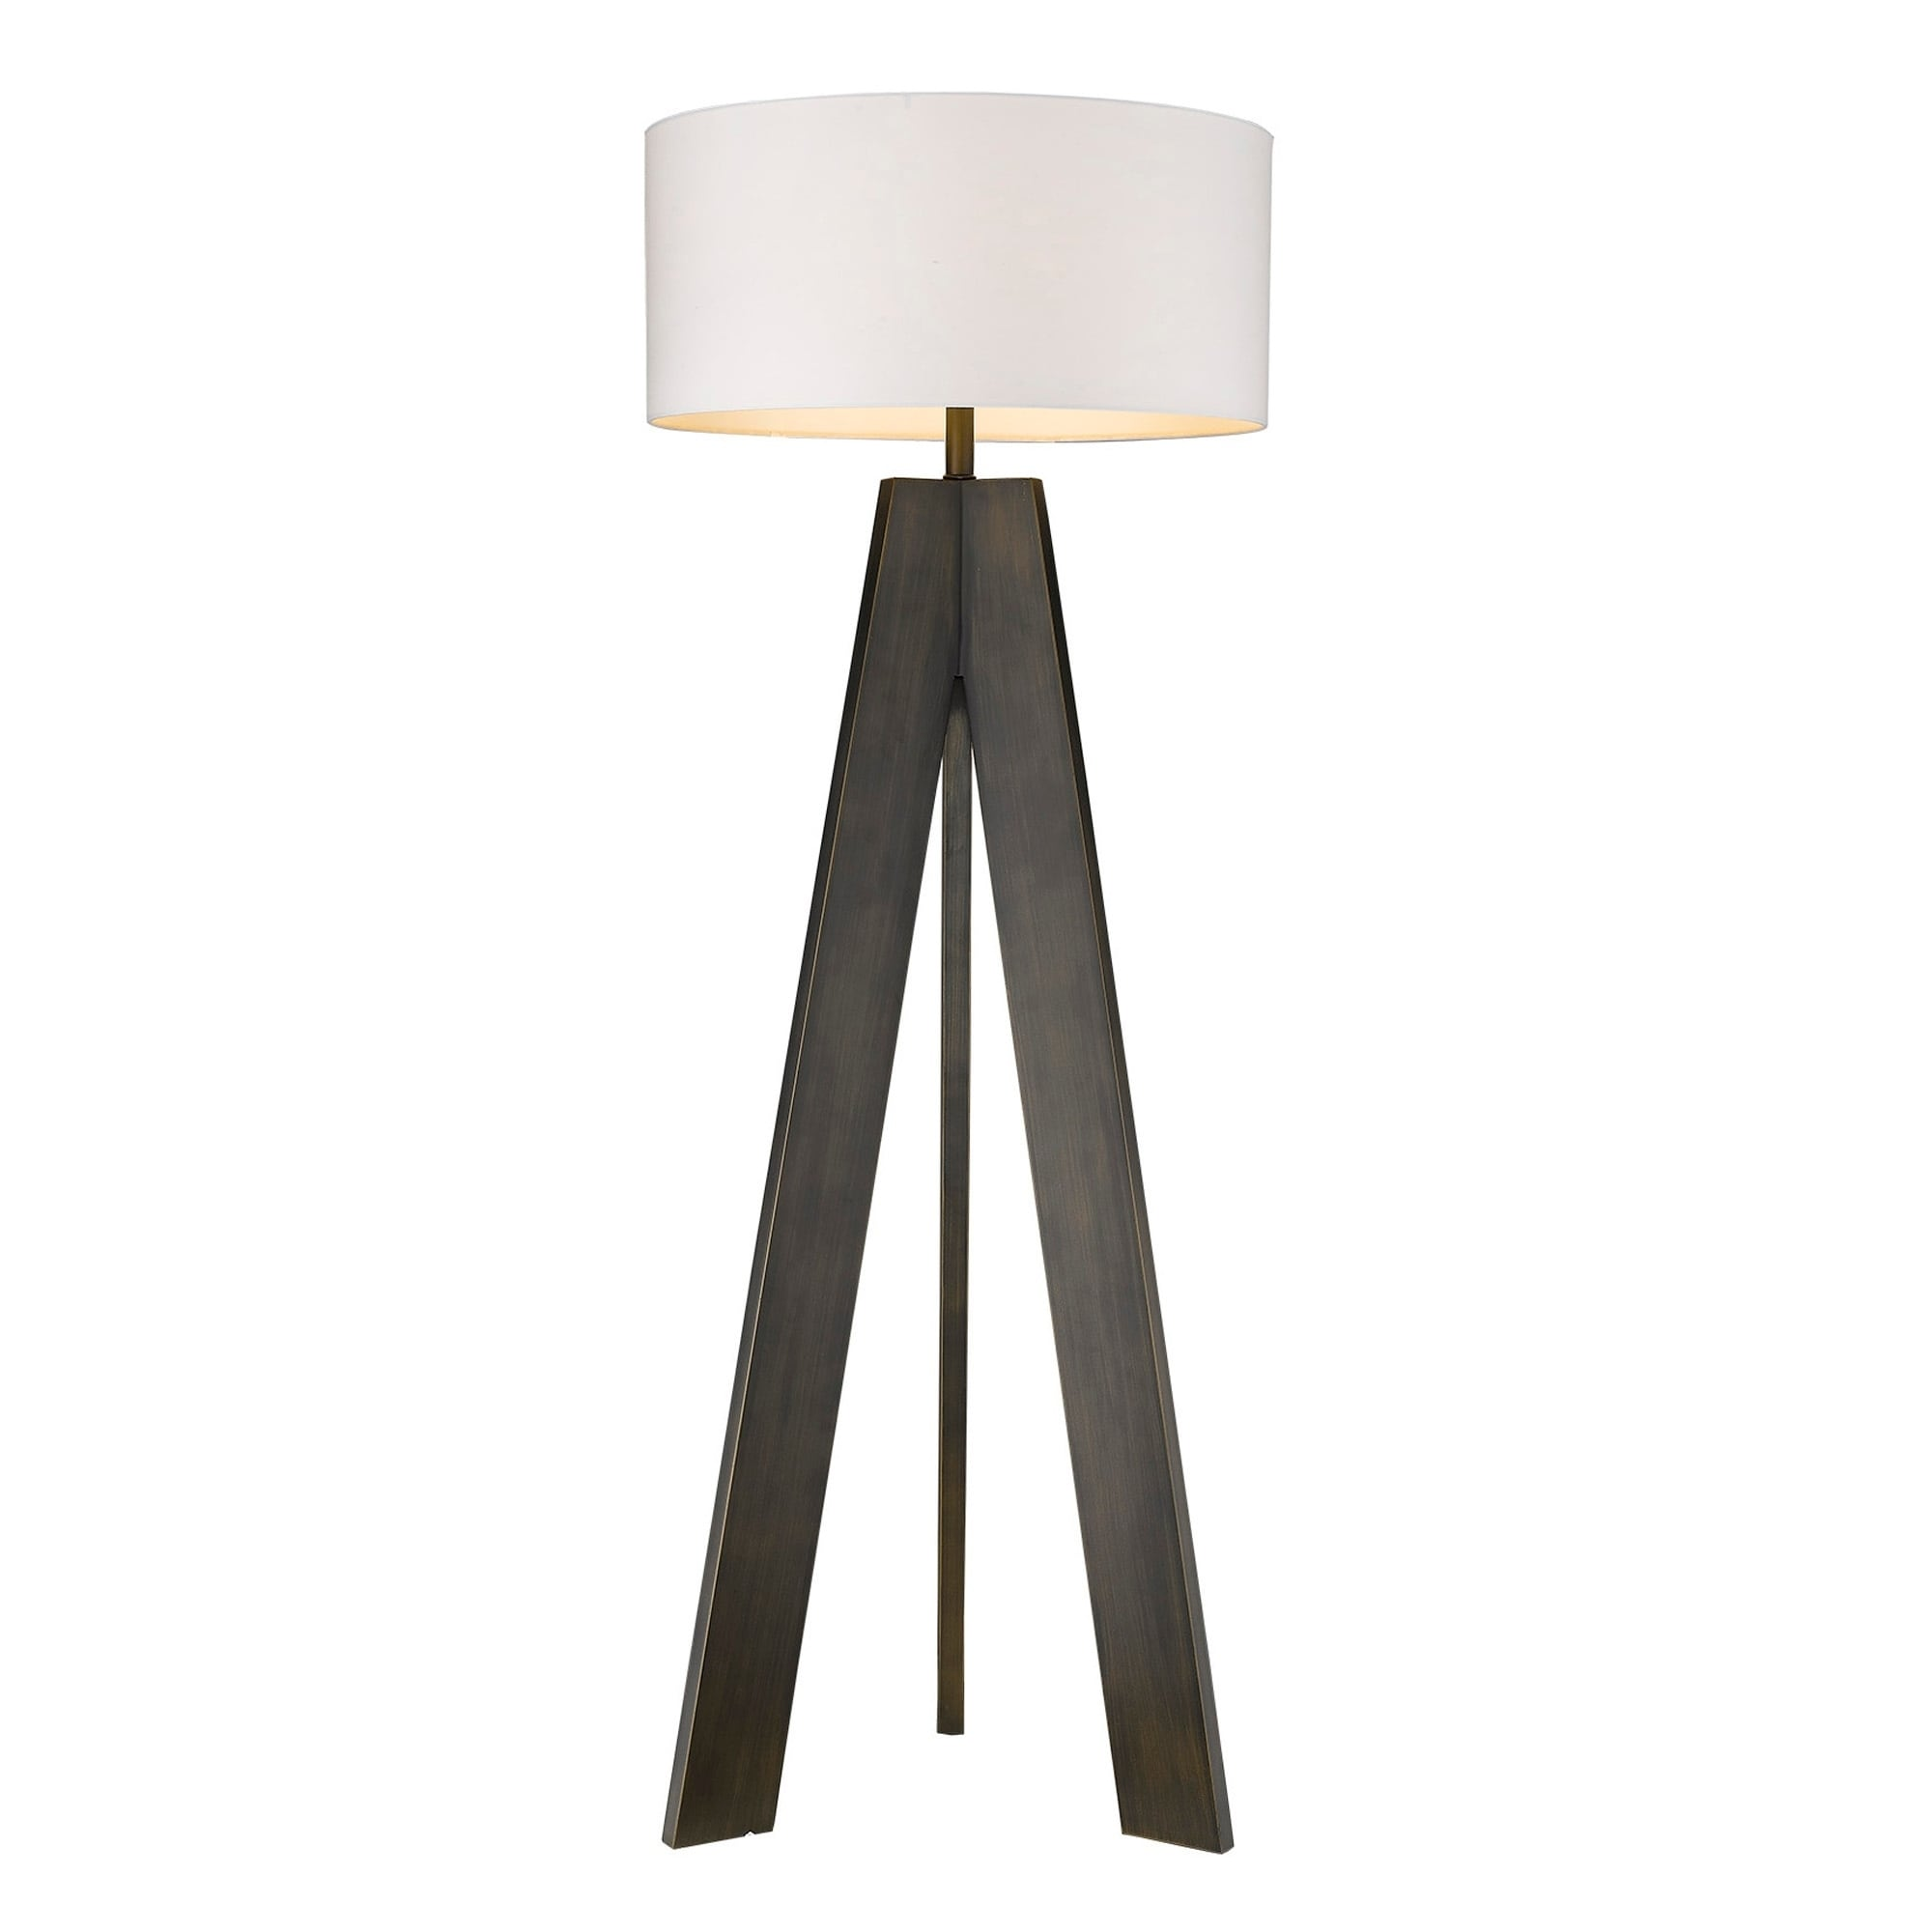 Image of: Shop Soccle 1 Light Oil Rubbed Bronze Floor Lamp Oil Rubbed Bronze Oil Rubbed Bronze Overstock 28227900